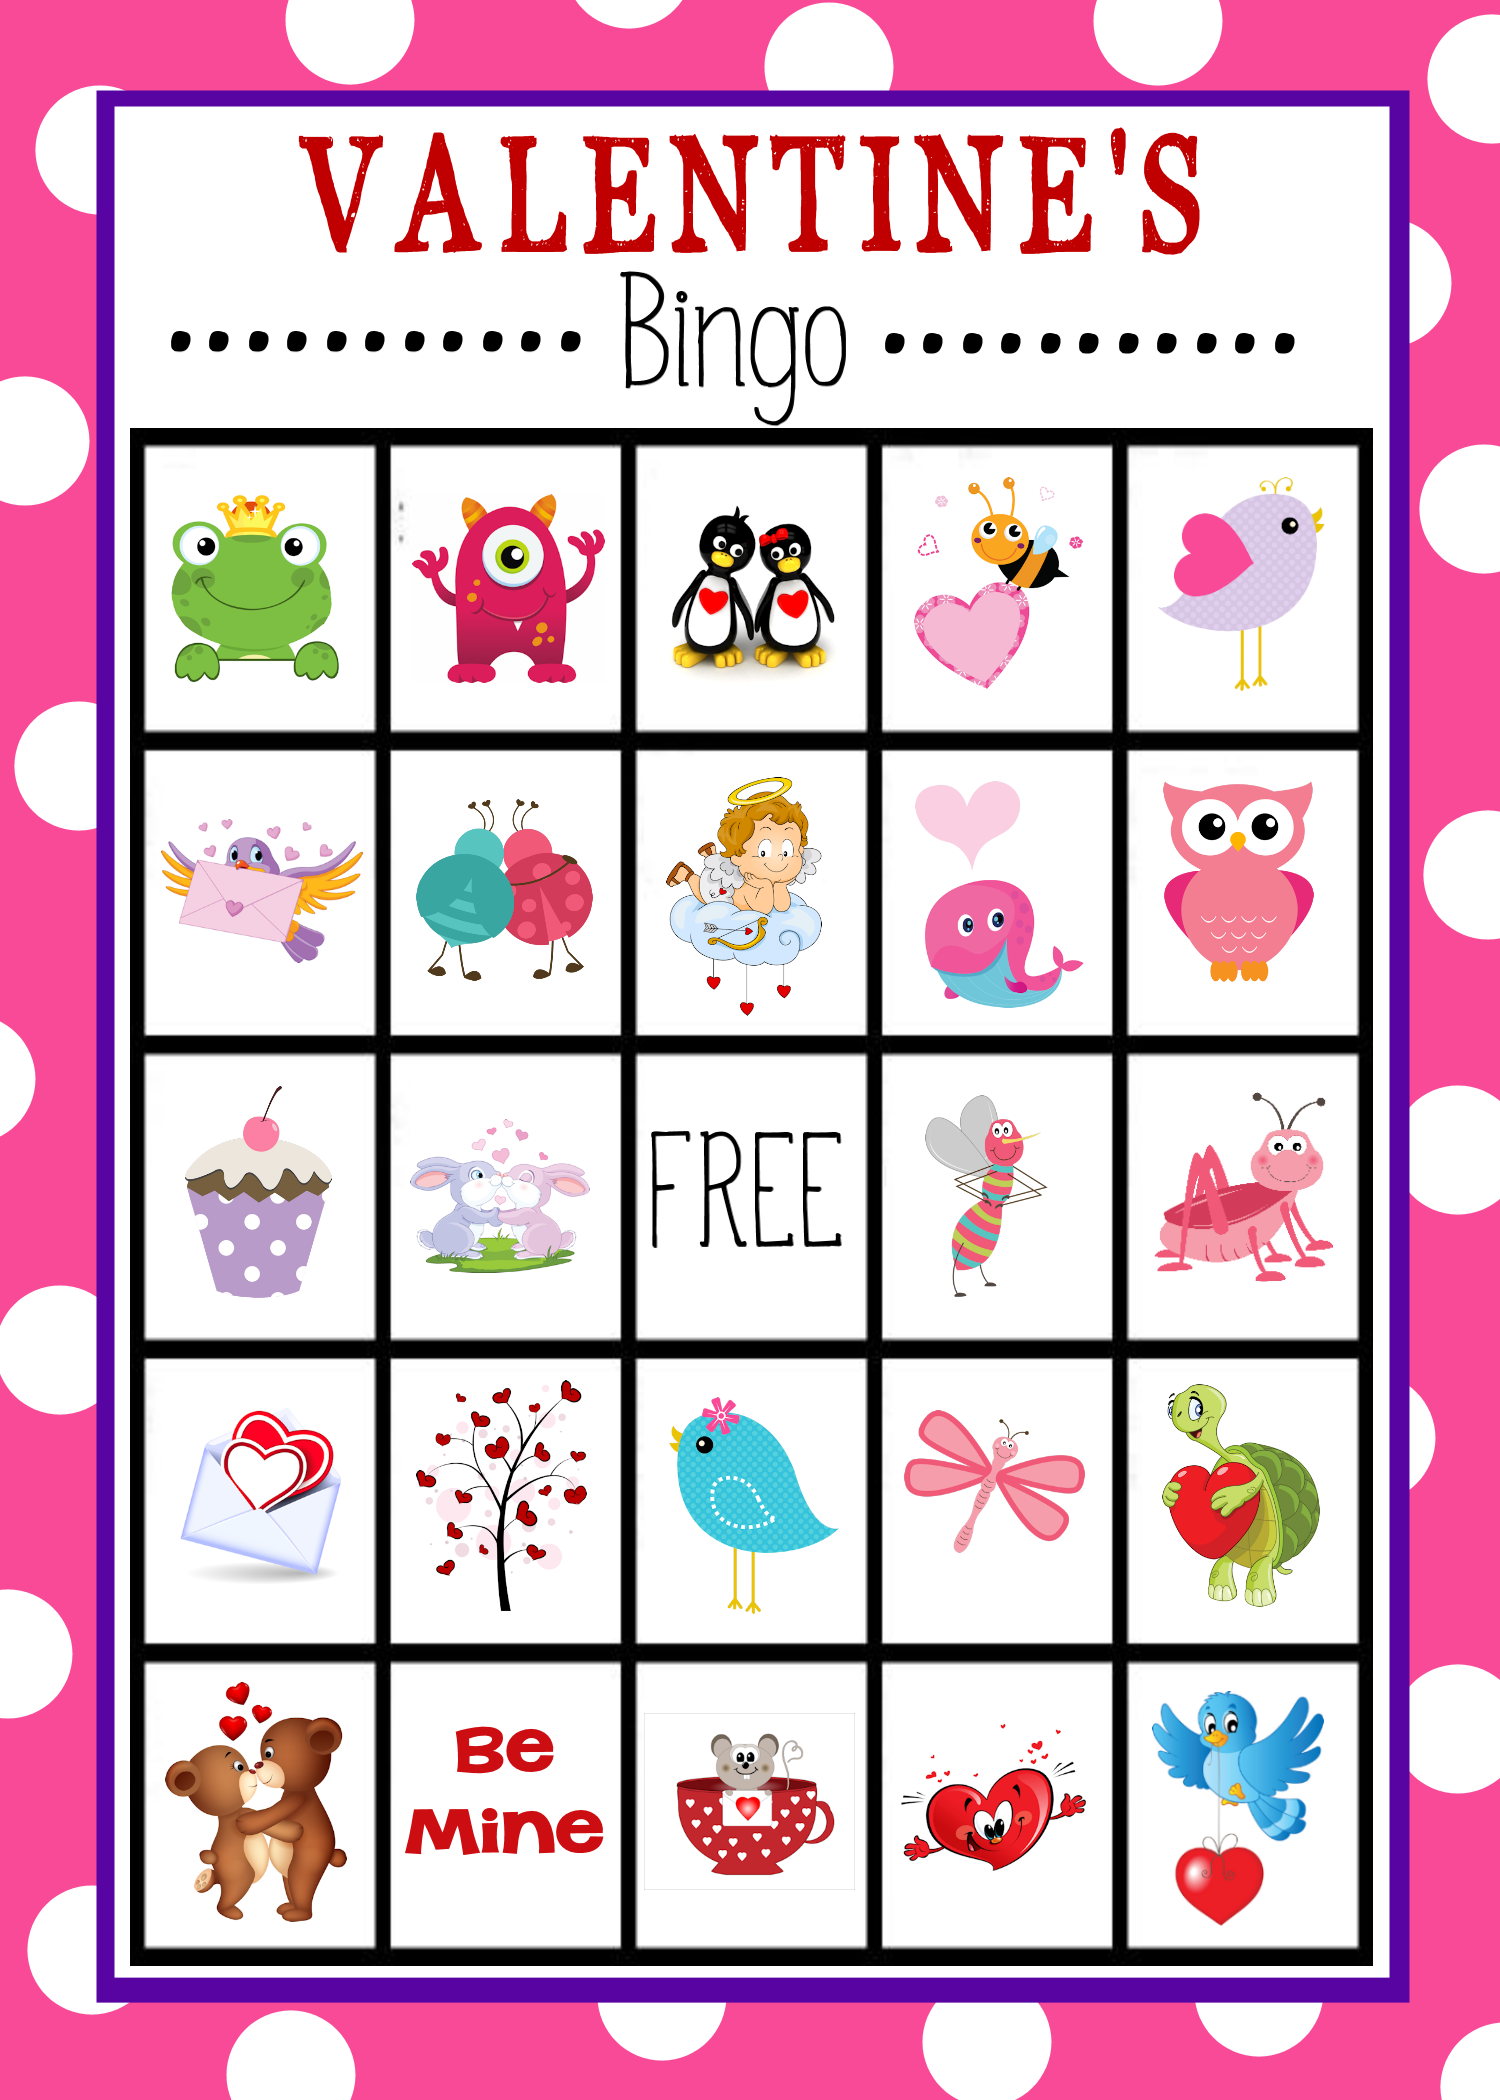 Valentines clipart printable free clip art download Free Printable Valentine's Day Bingo Game clip art download